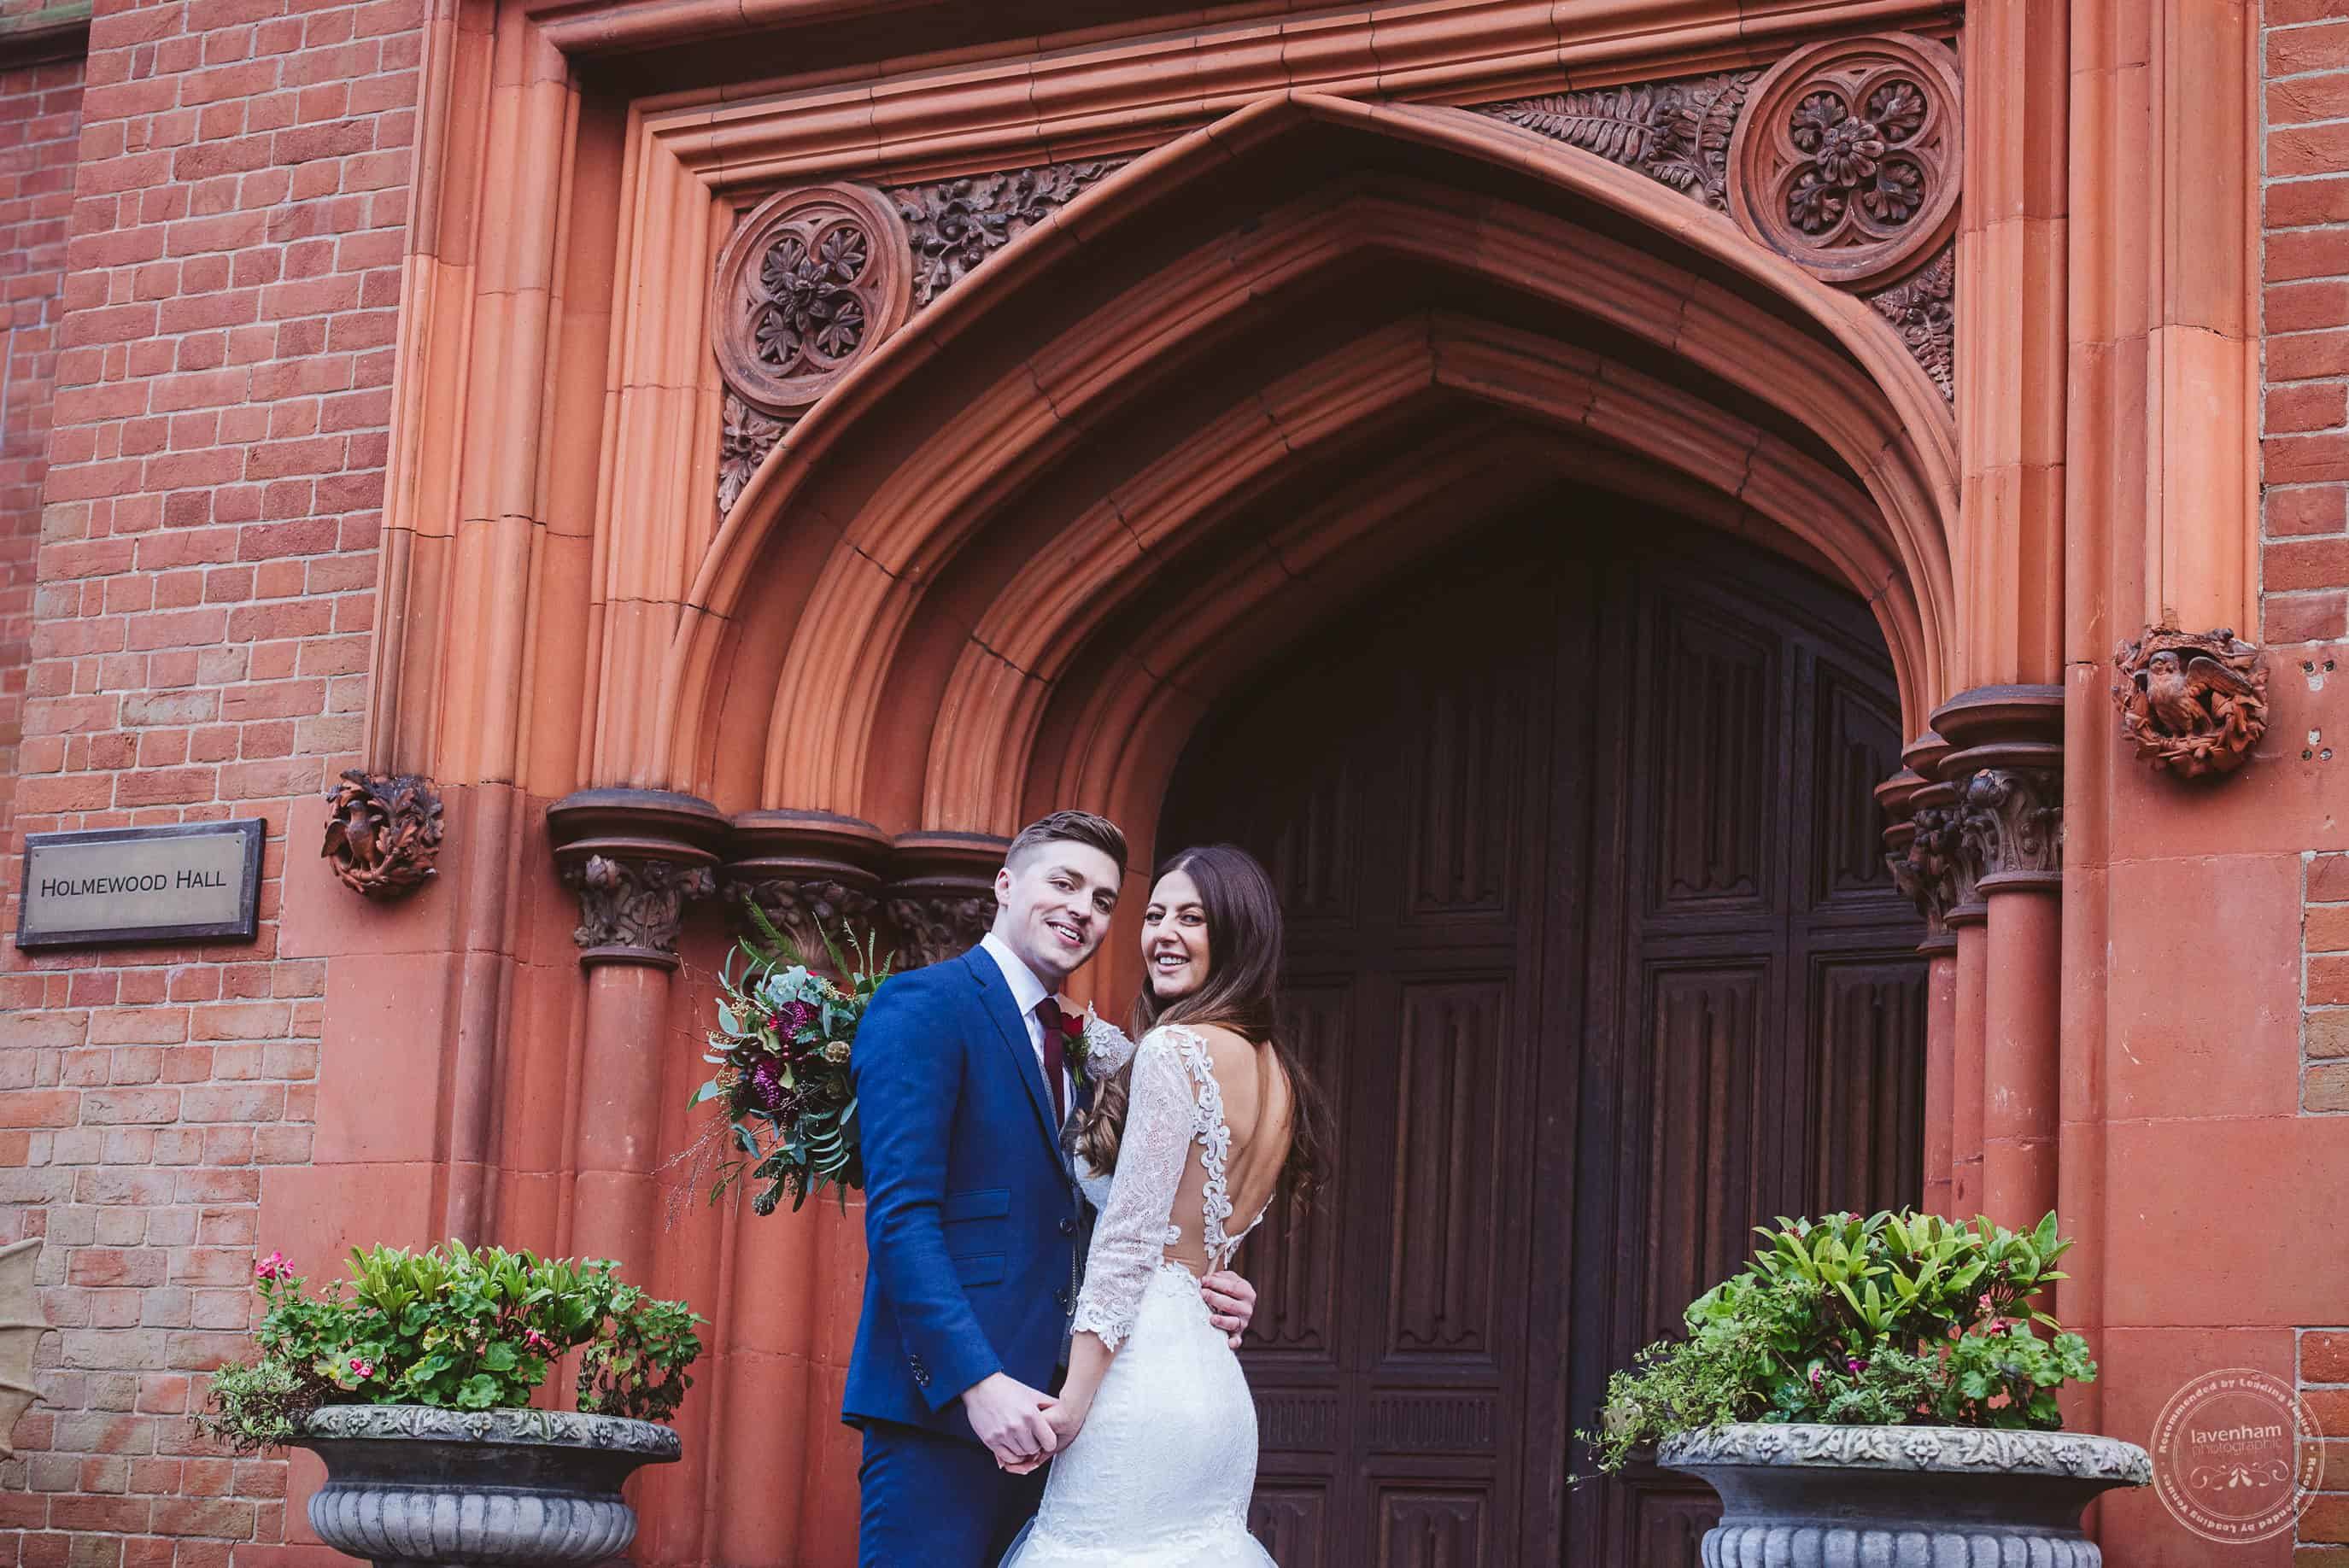 301119 Holmewood Hall Wedding Photographer 147